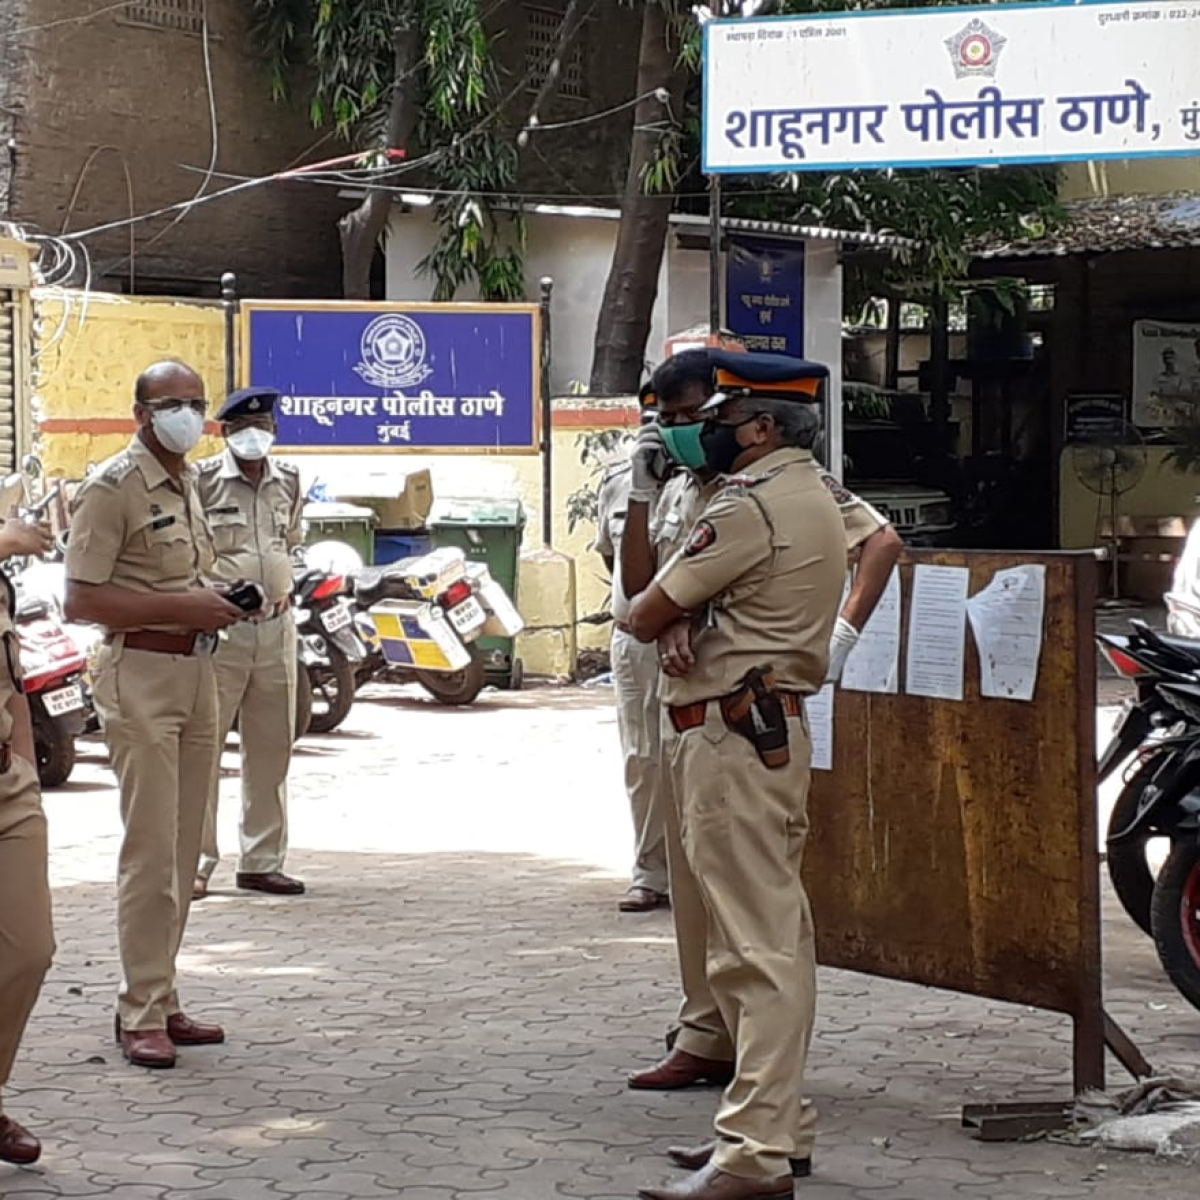 Coronavirus in Mumbai: Here's what we know of the two cops who succumbed to COVID-19